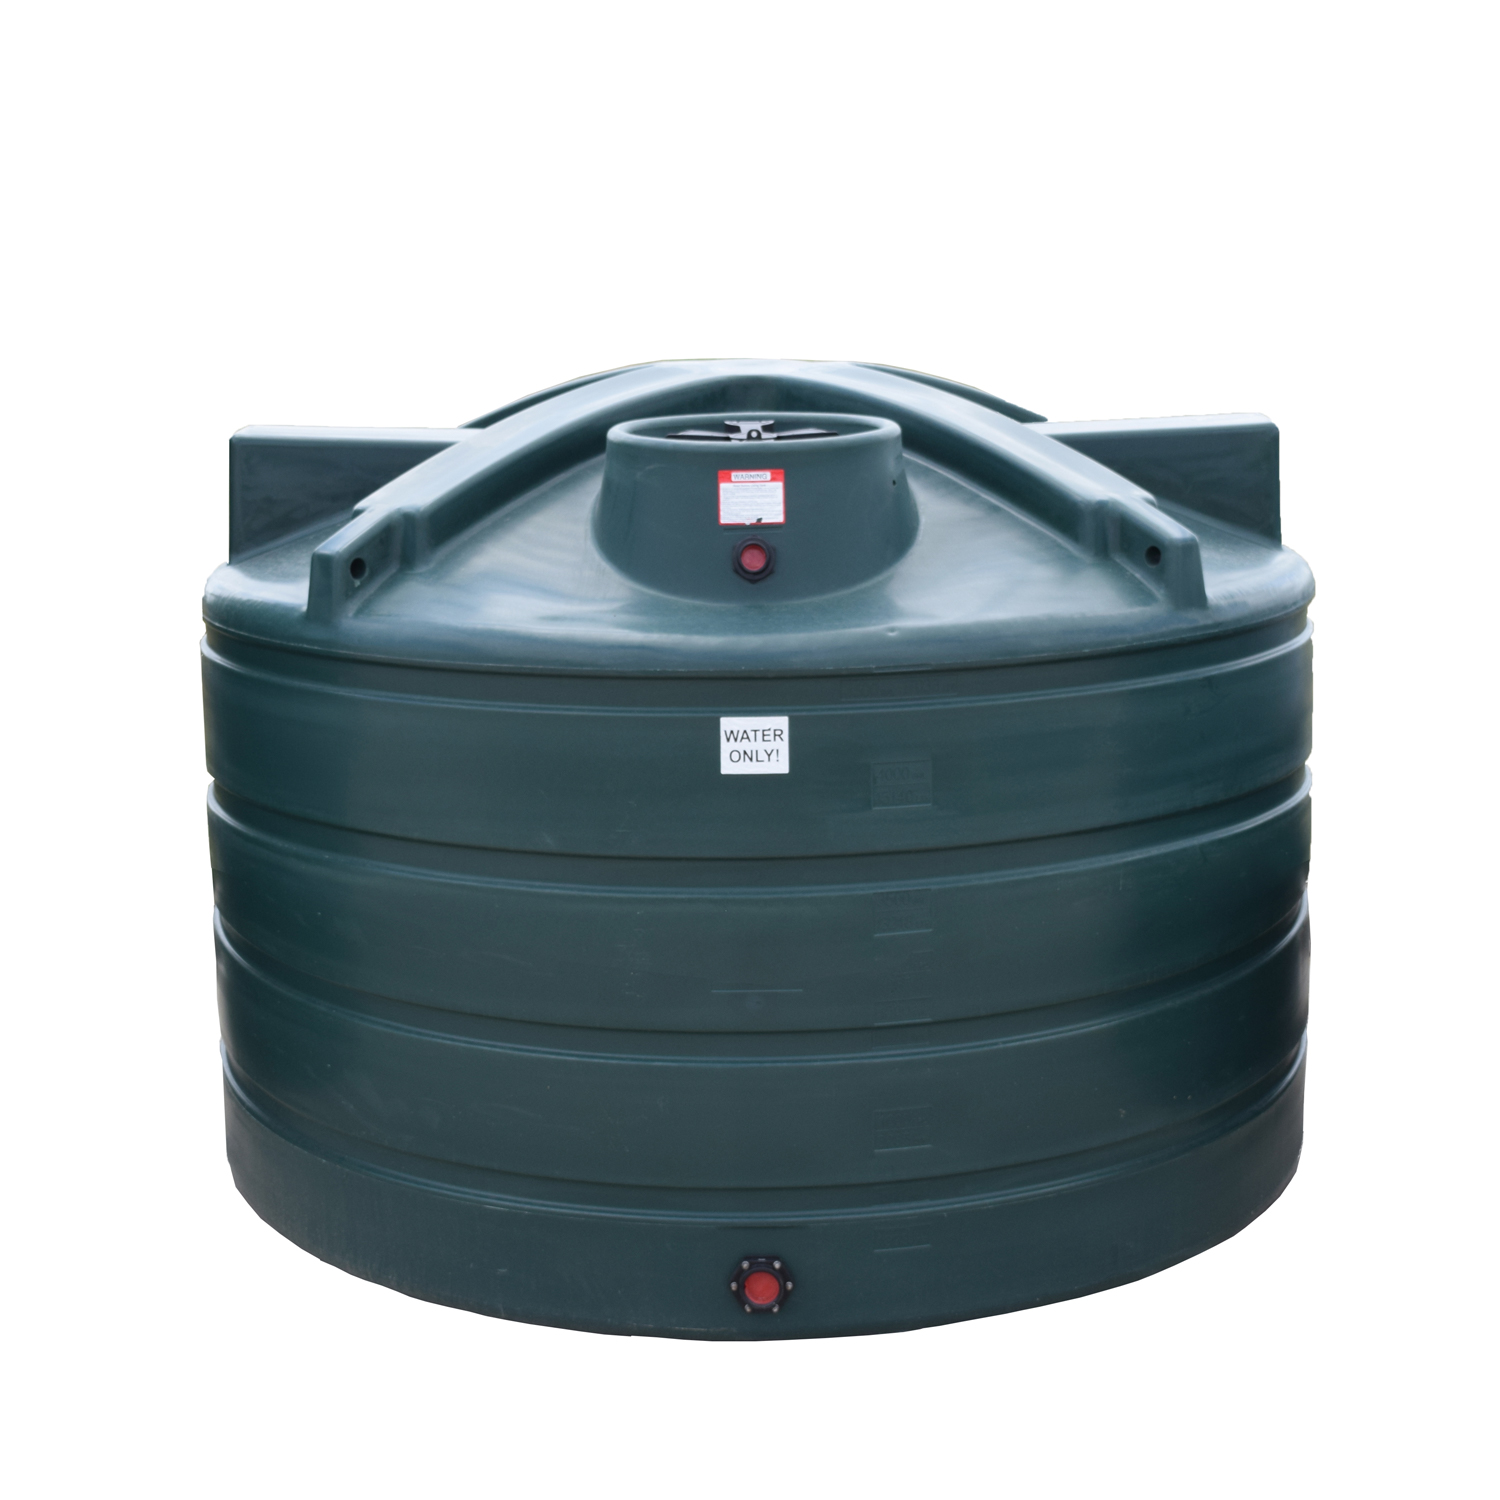 Enduraplas 1,650 Gallon Water Storage Tank